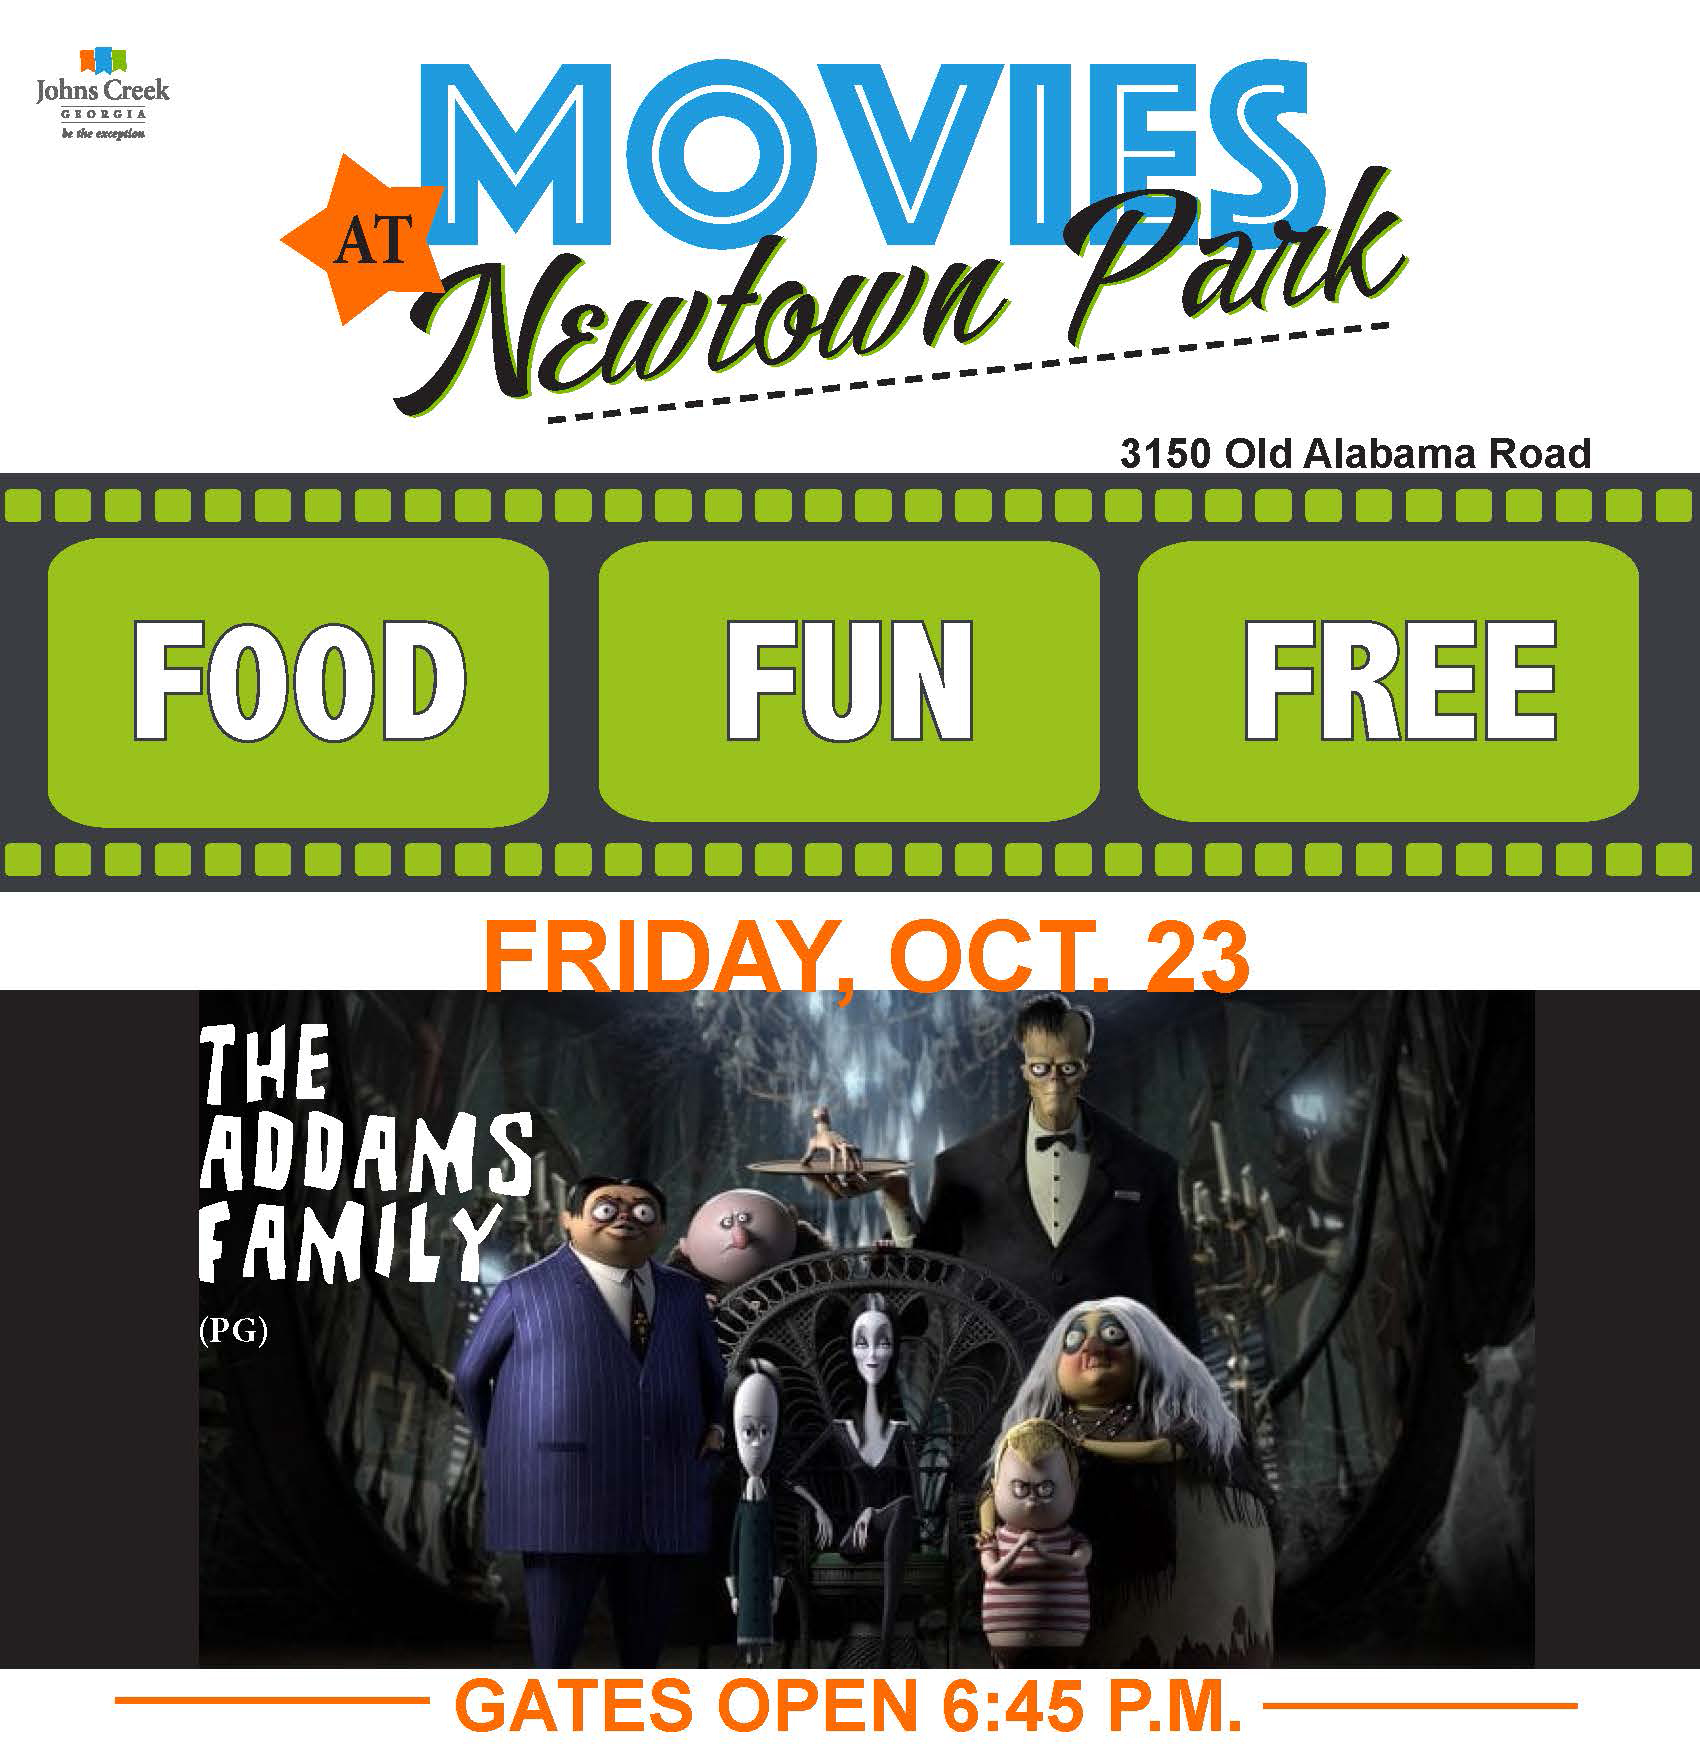 Movie Night returns to Newtown Park on Friday, Oct. 23